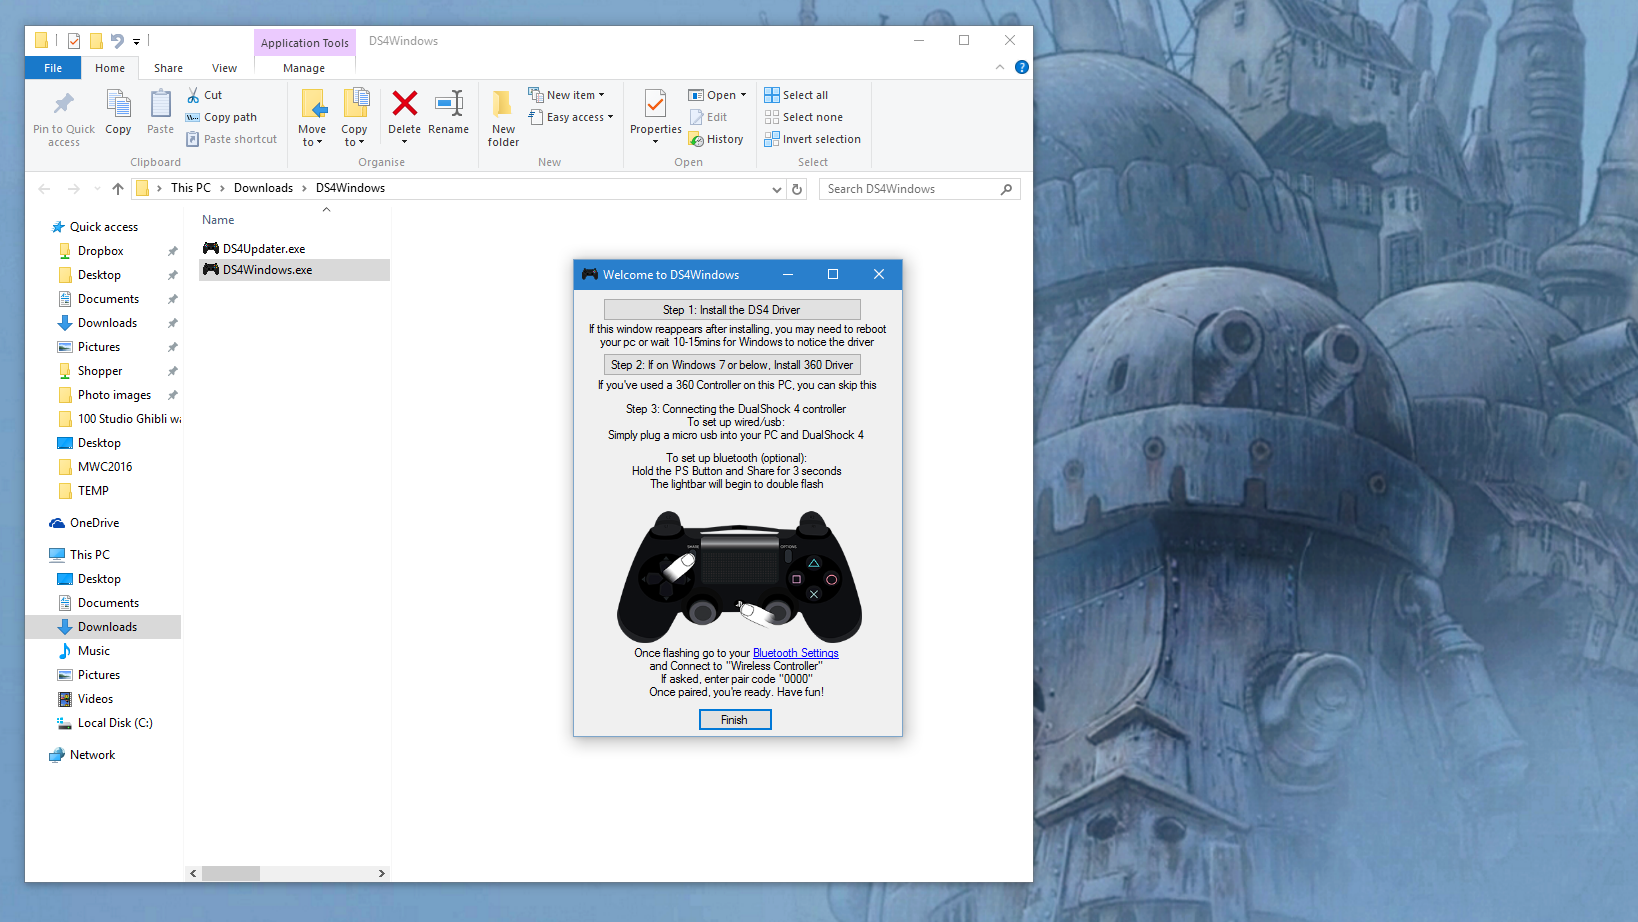 How to use a PS4 controller on PC - Play with your DualShock 4 wired ...